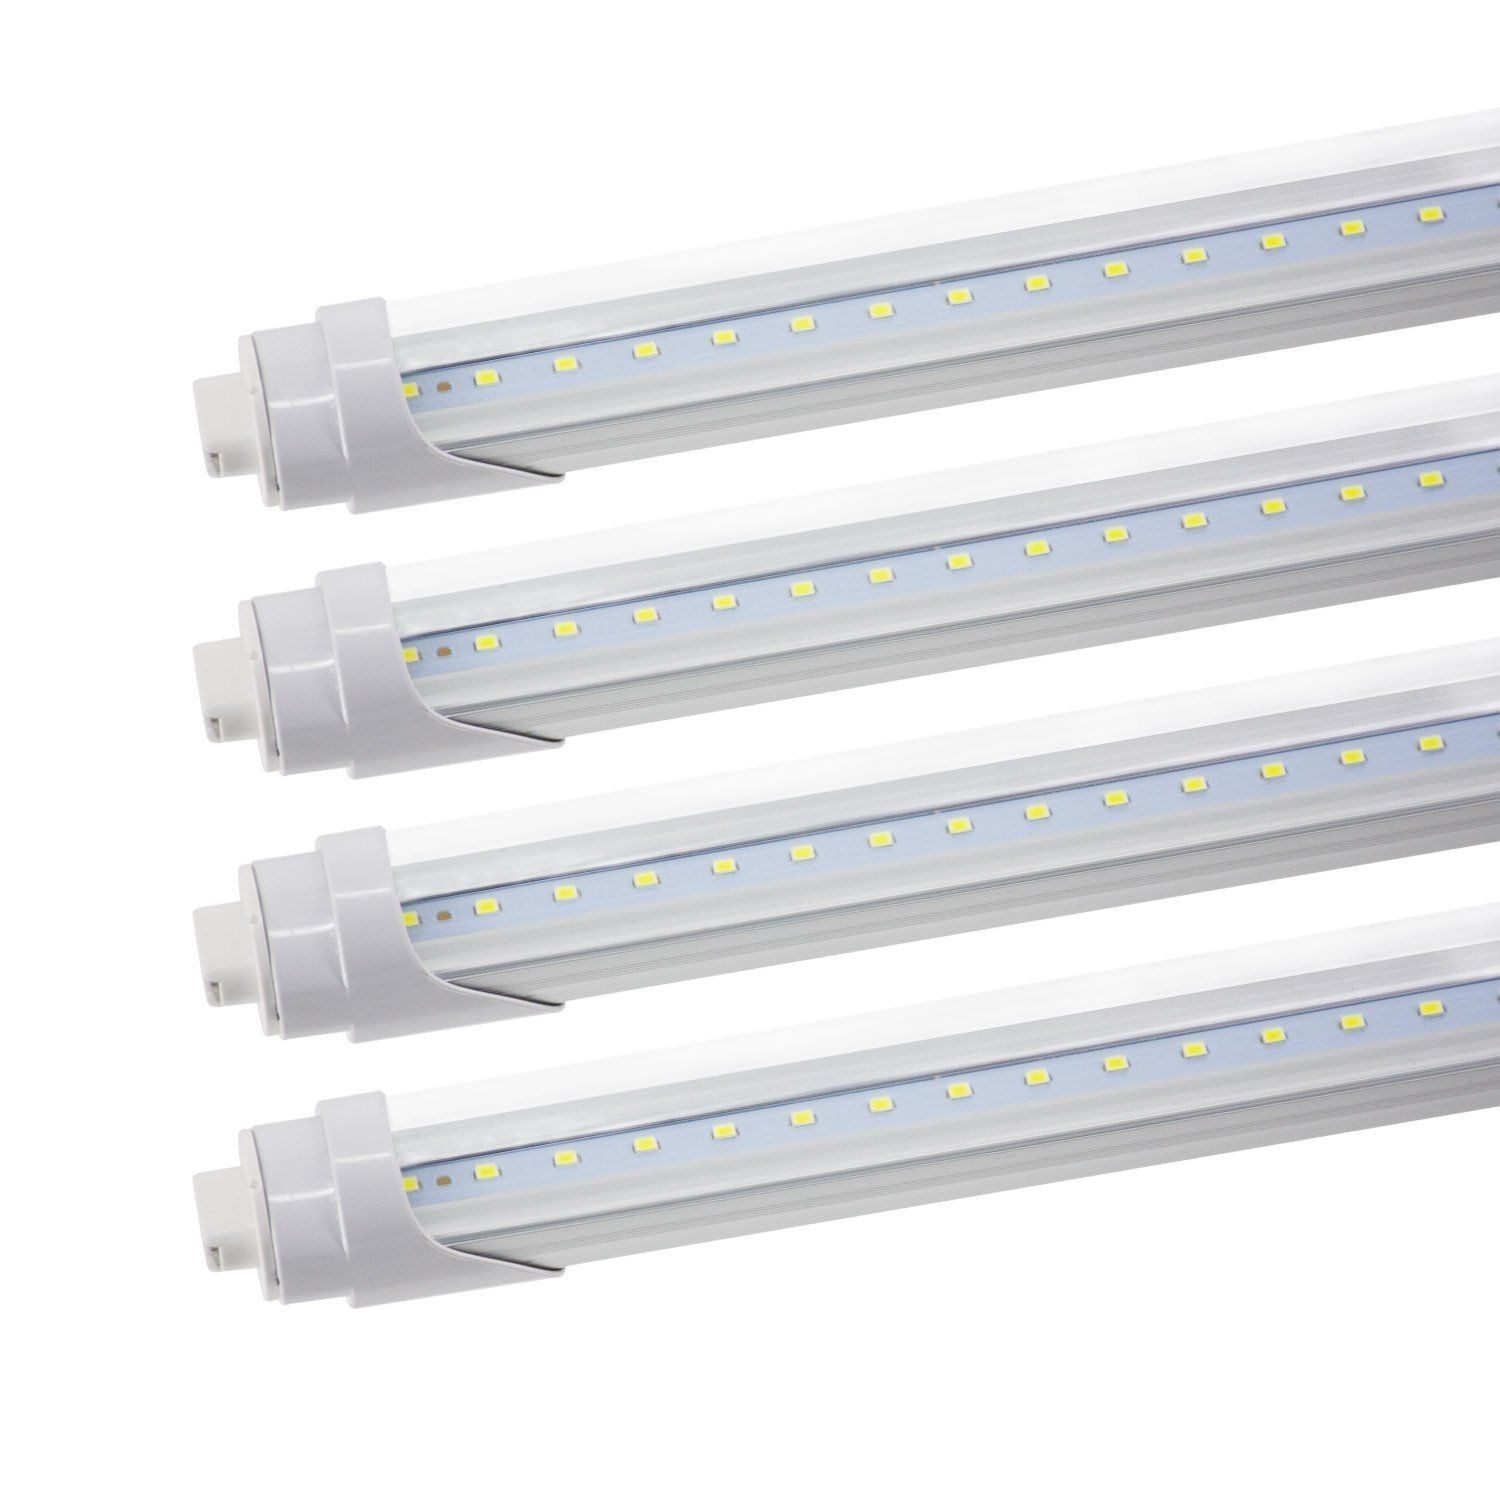 JESLED T8/T10/T12 LED Light Tube, 8FT LED R17D/HO Base